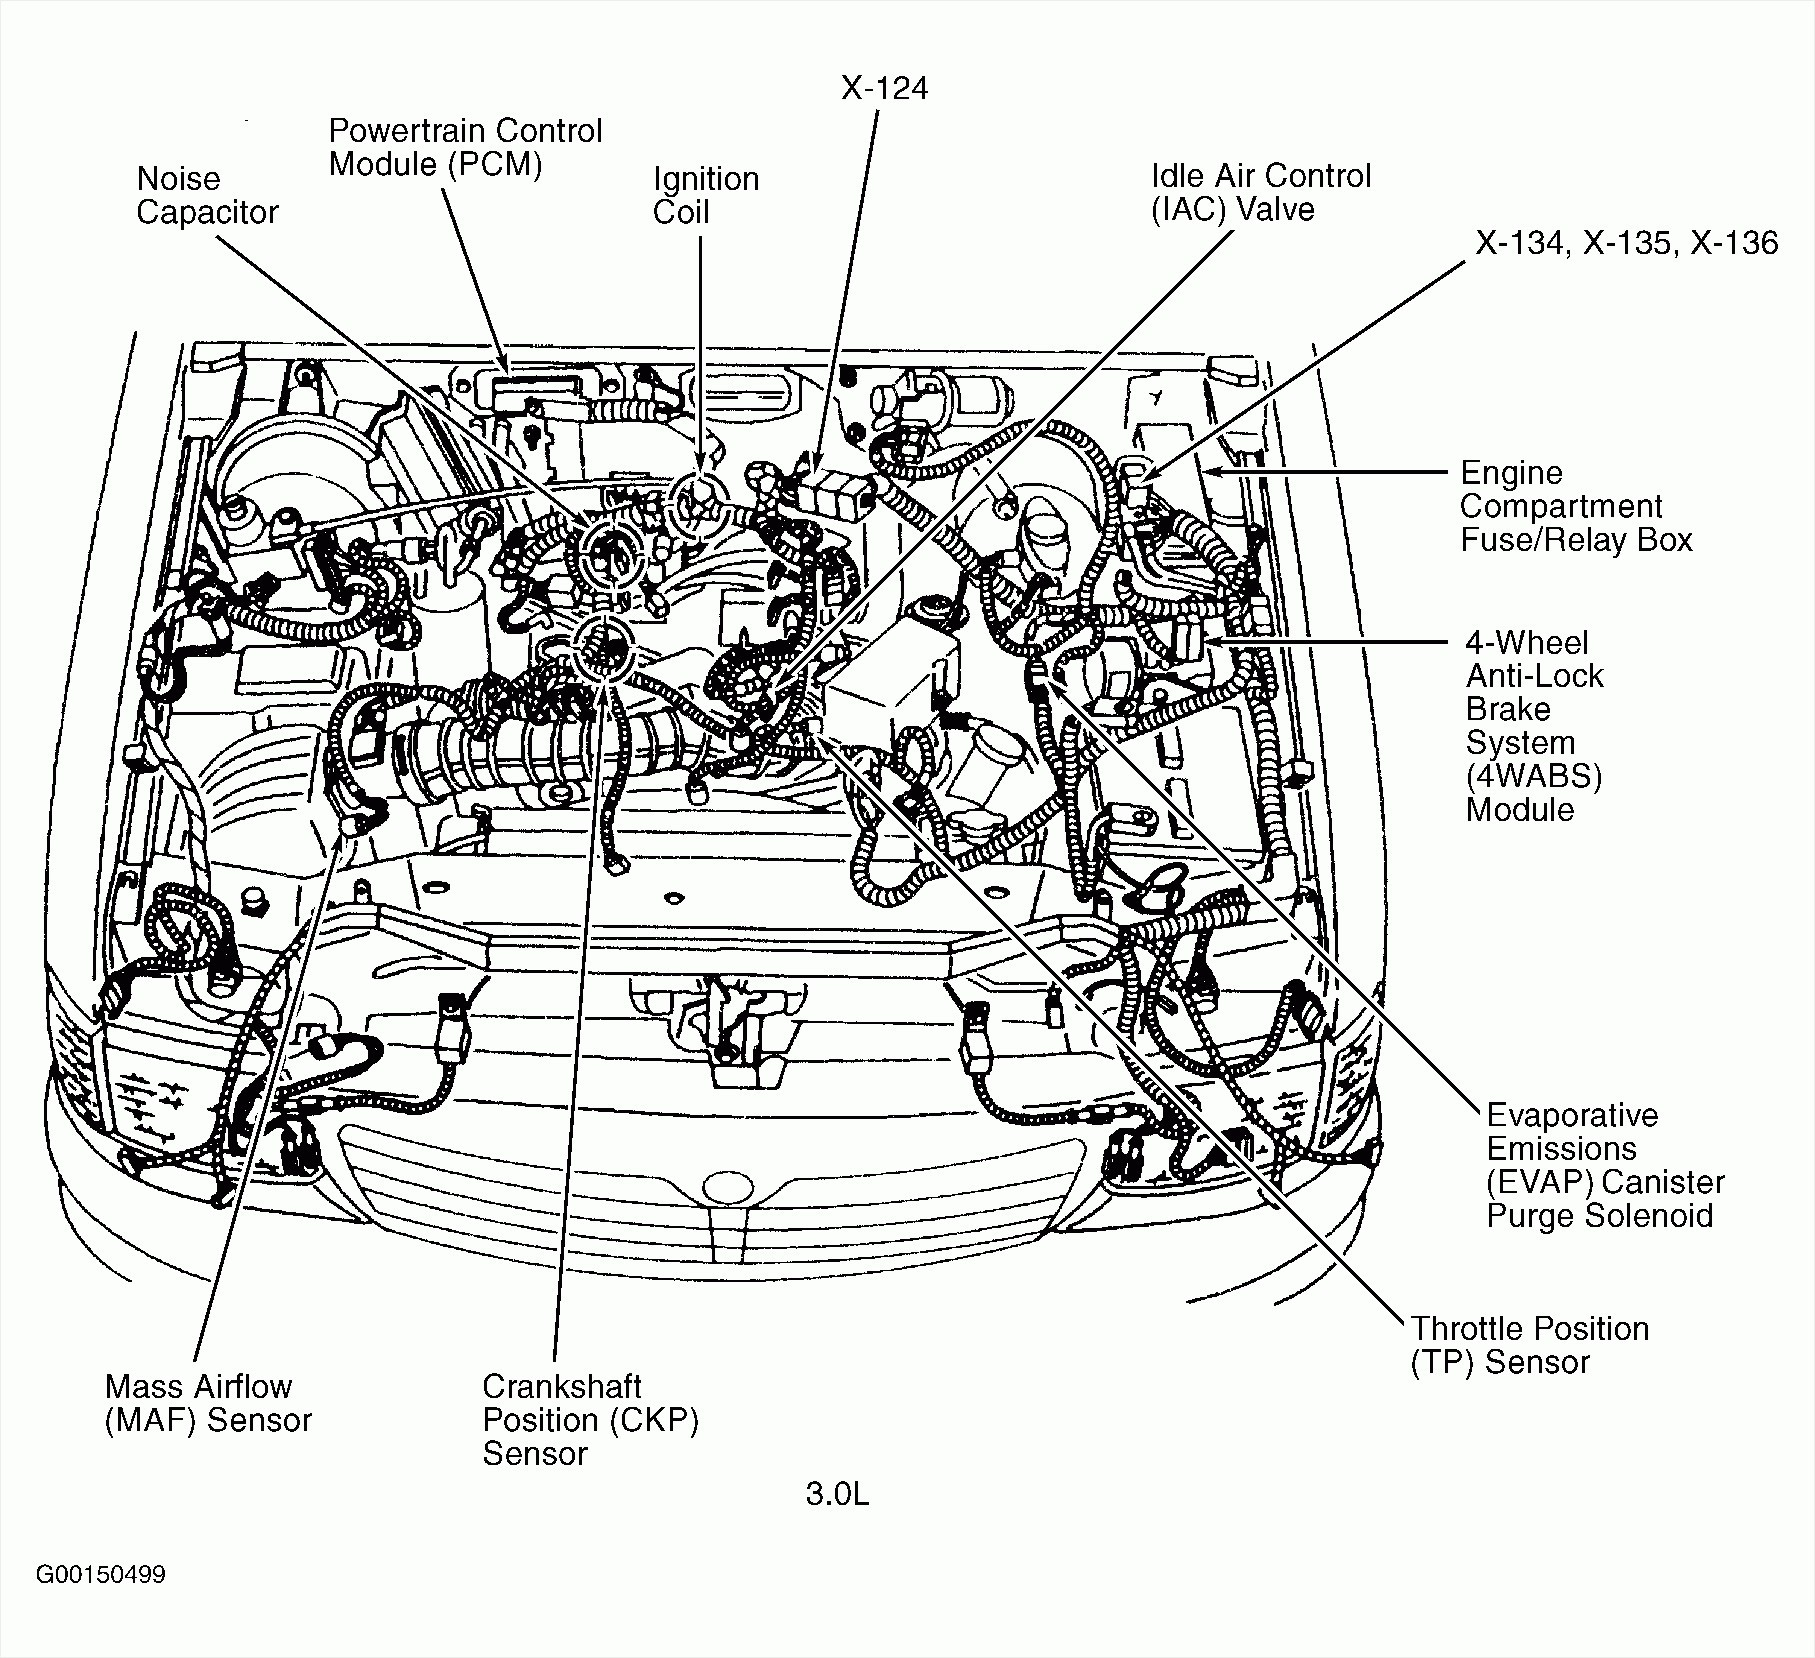 ford 4 0 ohv engine diagram house wiring diagram symbols u2022 rh mollusksurfshopnyc com Ford 3.0 V6 Engine Diagram 2003 Ford 4 0 Sohc Engine Diagram